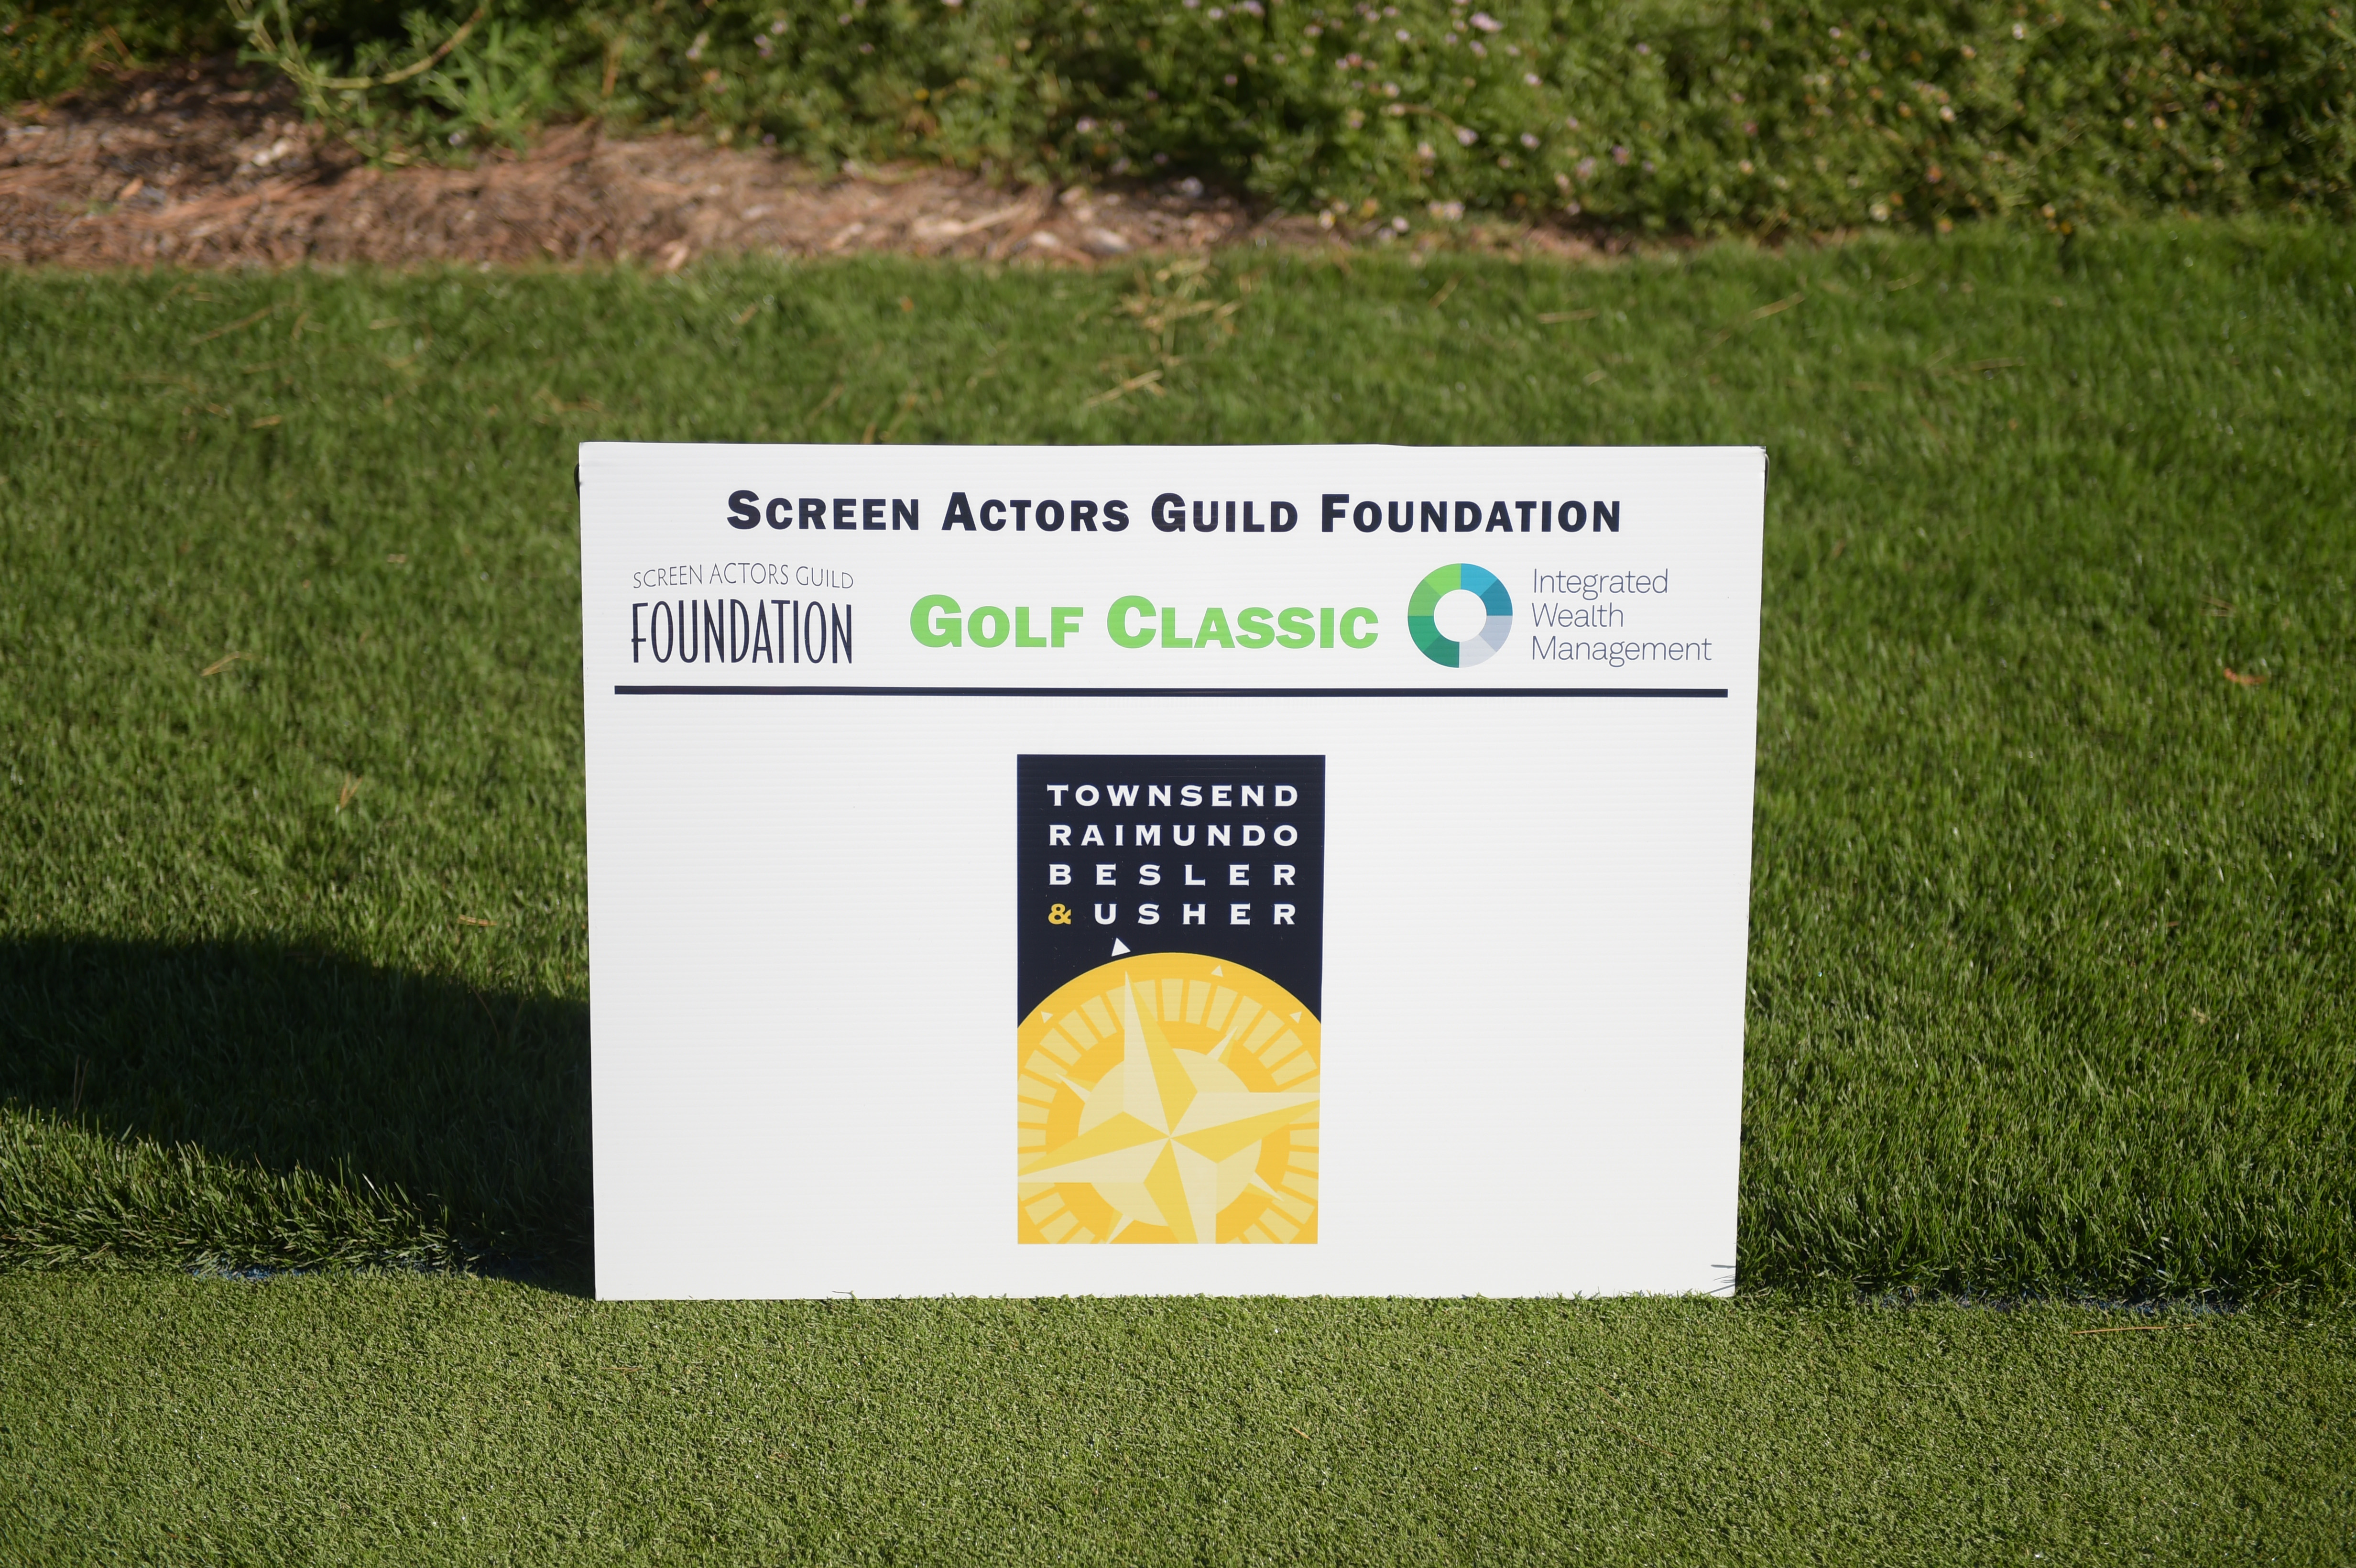 Townsend, Raimundo, Besler & Usher sponsor The Screen Actors Guild Foundation's 6th Annual Los Angeles Golf Classic. (Photo by Jason Kempin/Getty Images for The Screen Actors Guild Foundation)